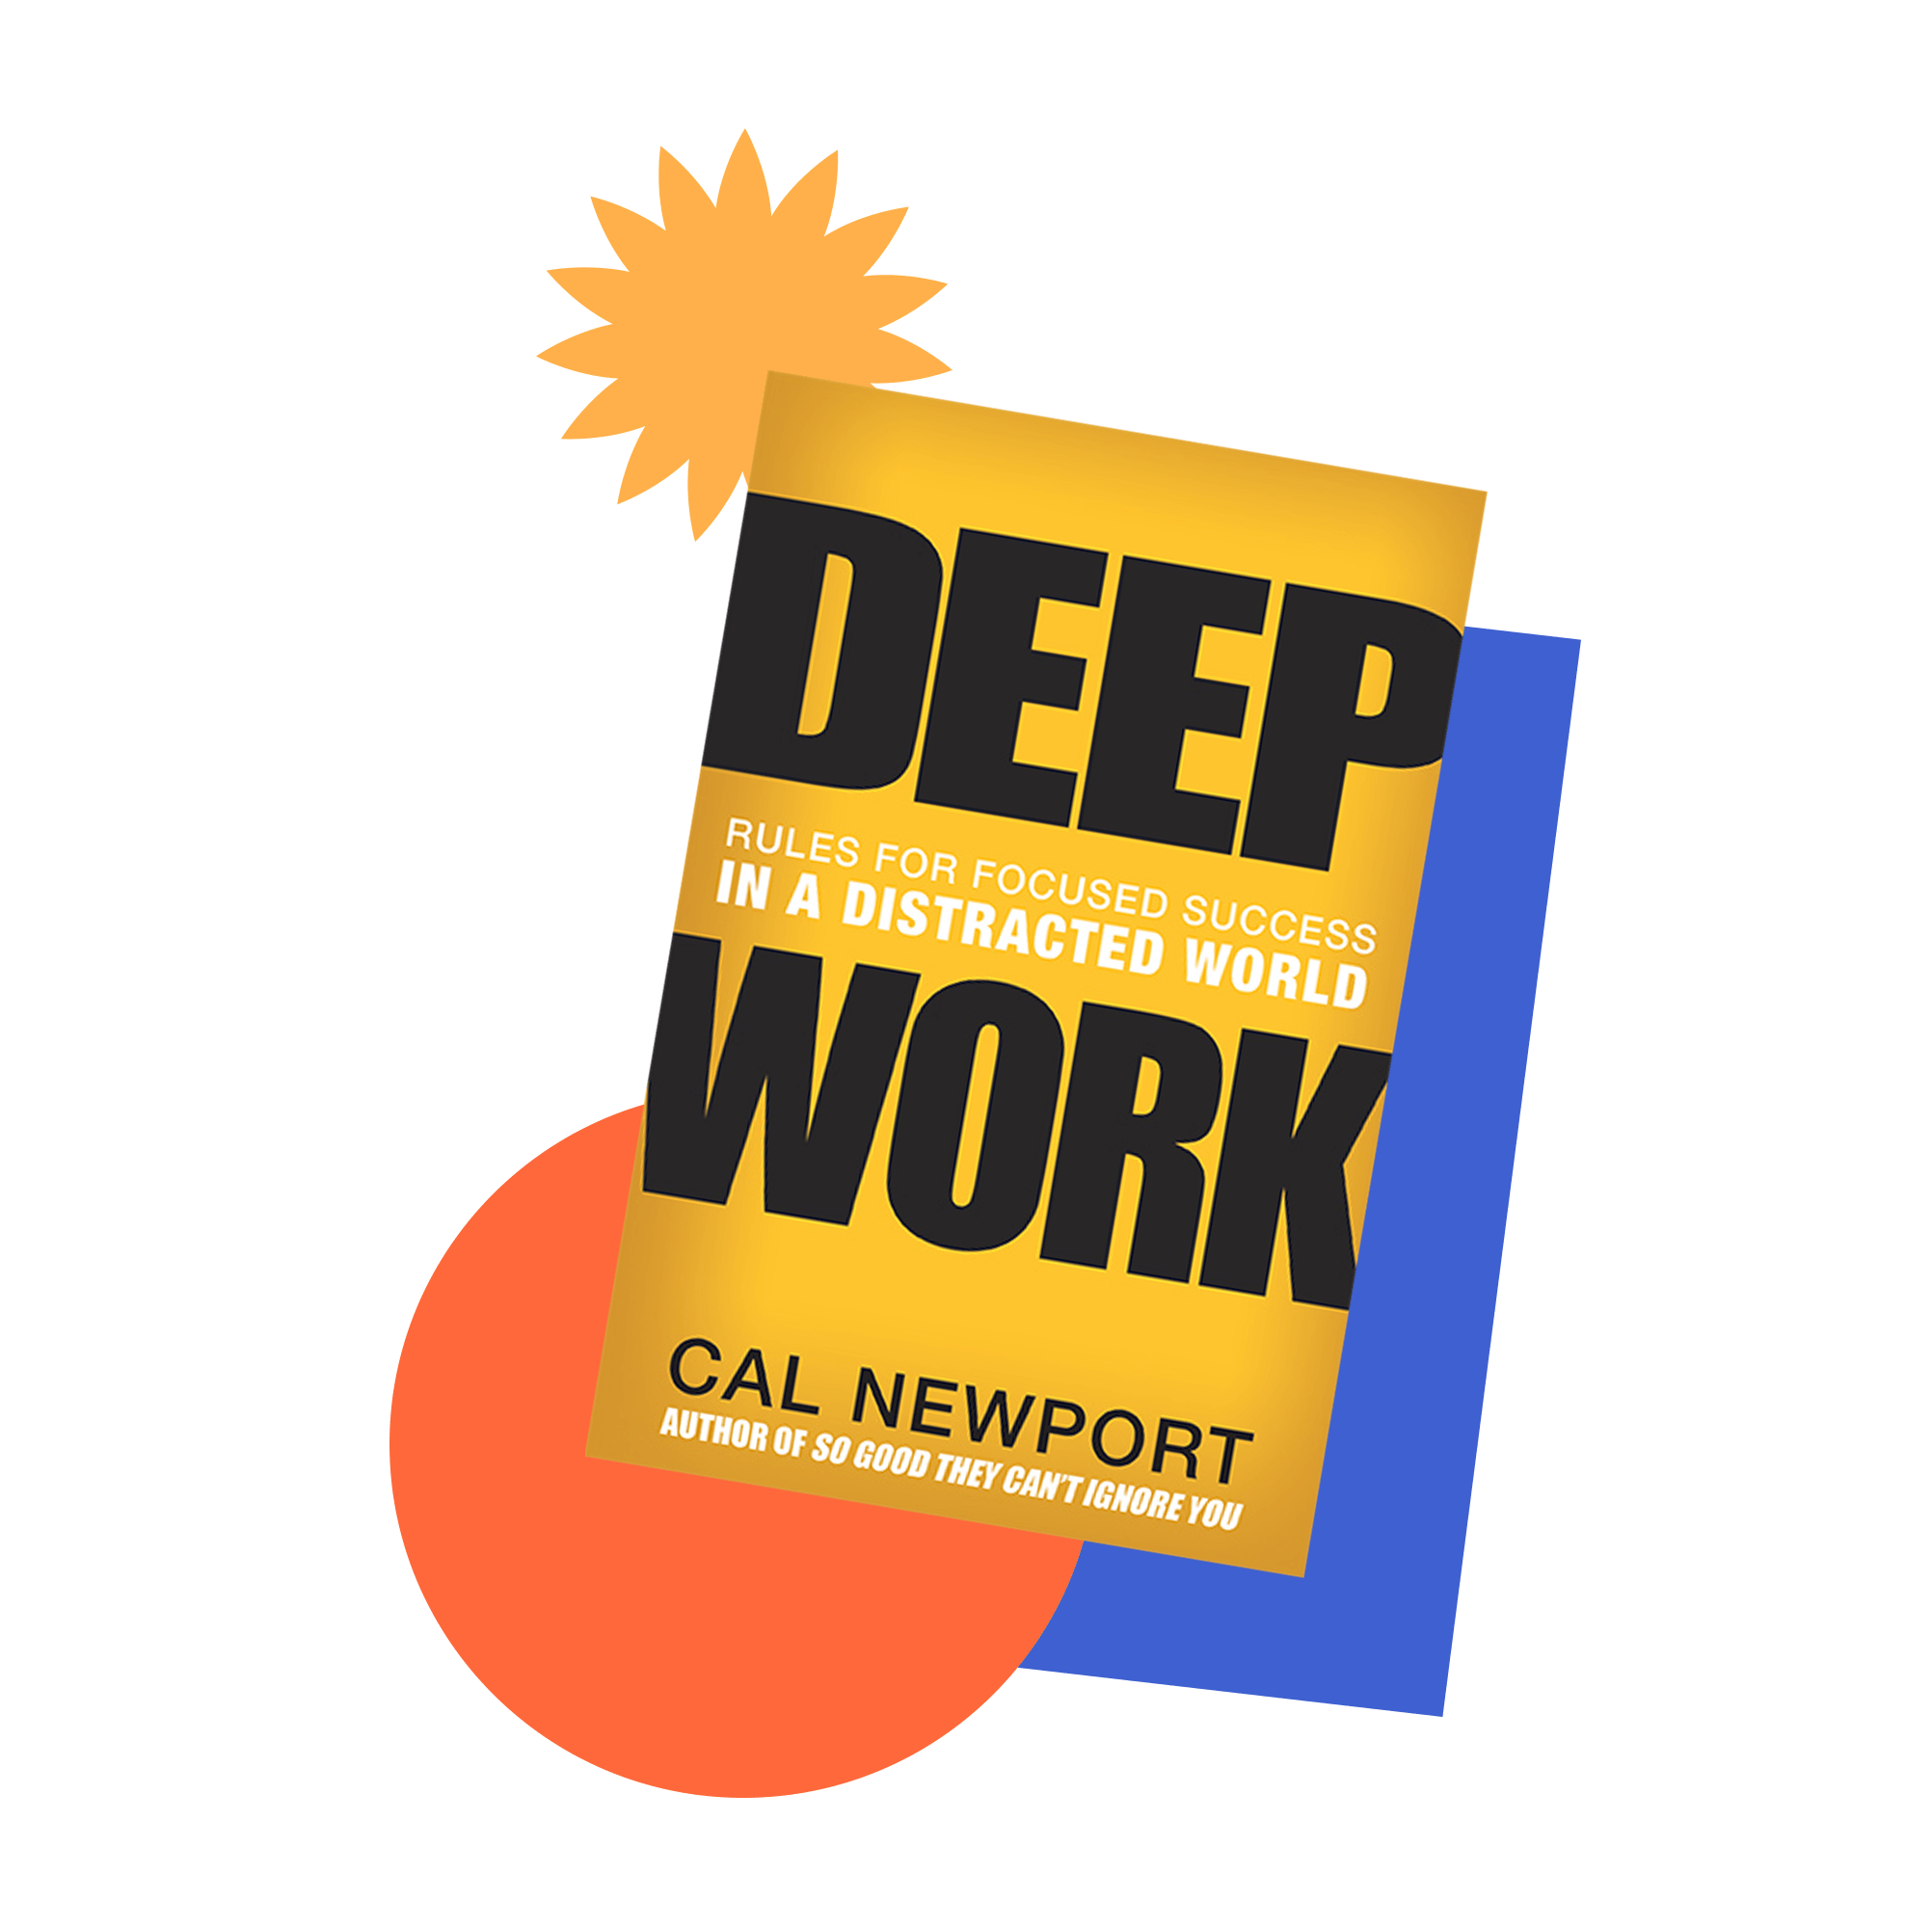 Book jacket cover for Deep Work: Rules for Focused Success in a Distracted World by Cal Newport